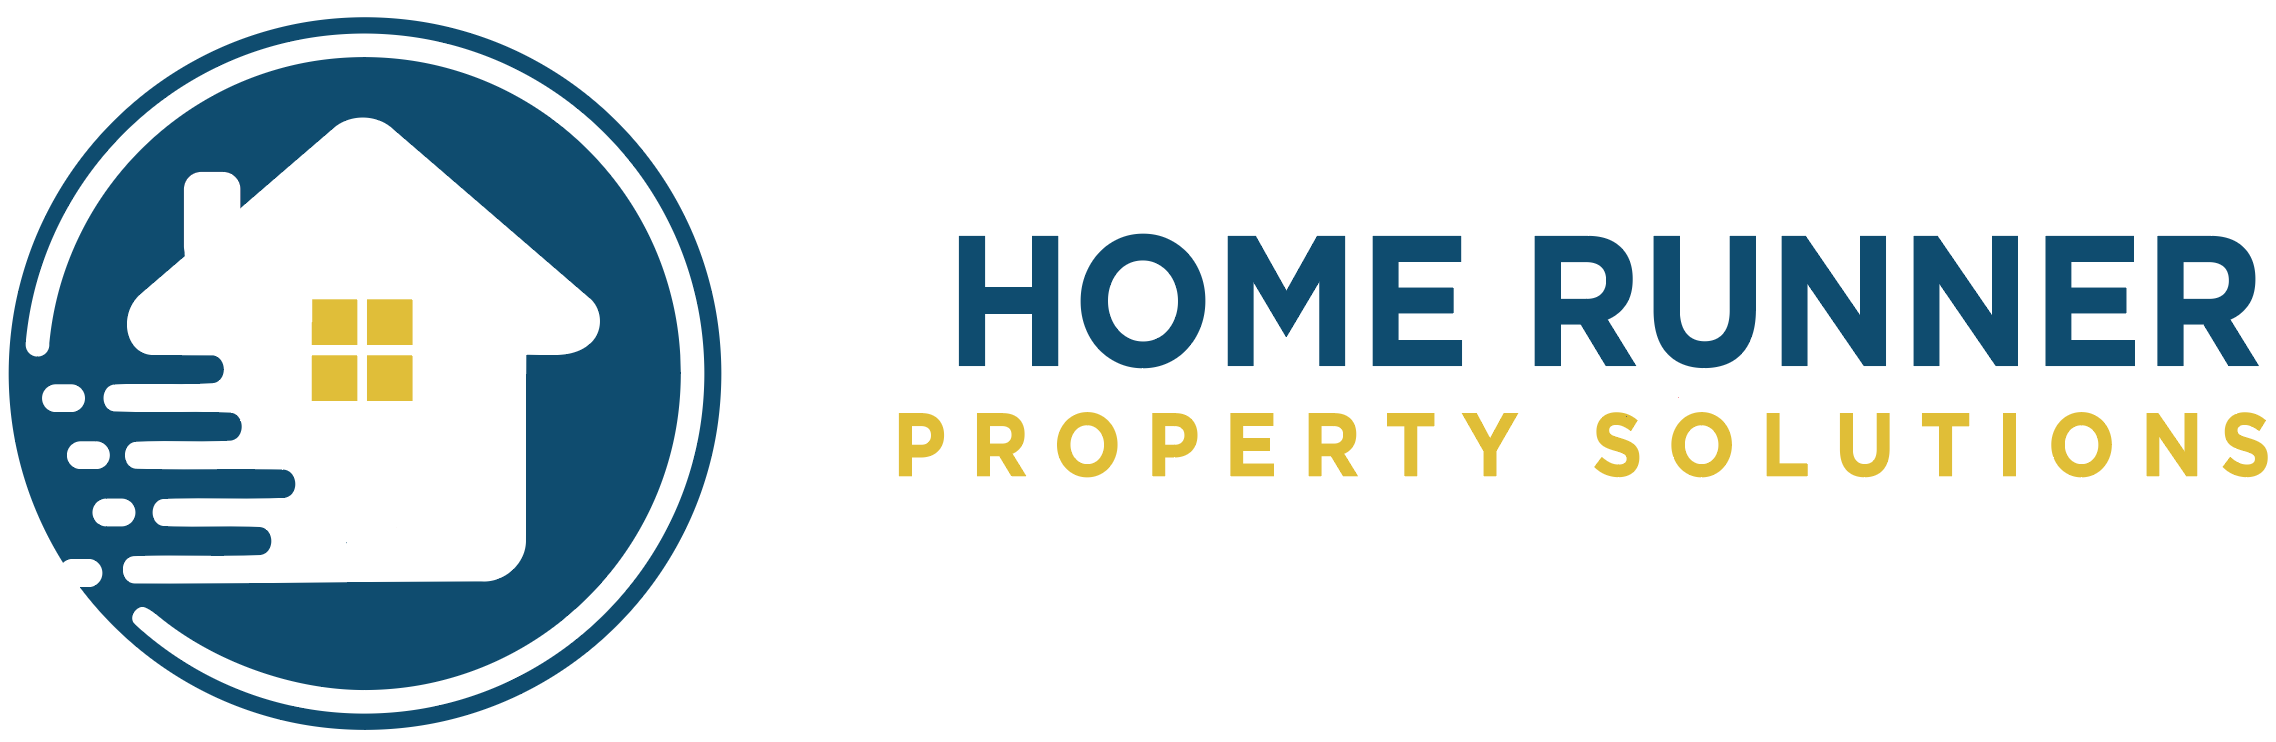 Home Runner Property Solutions